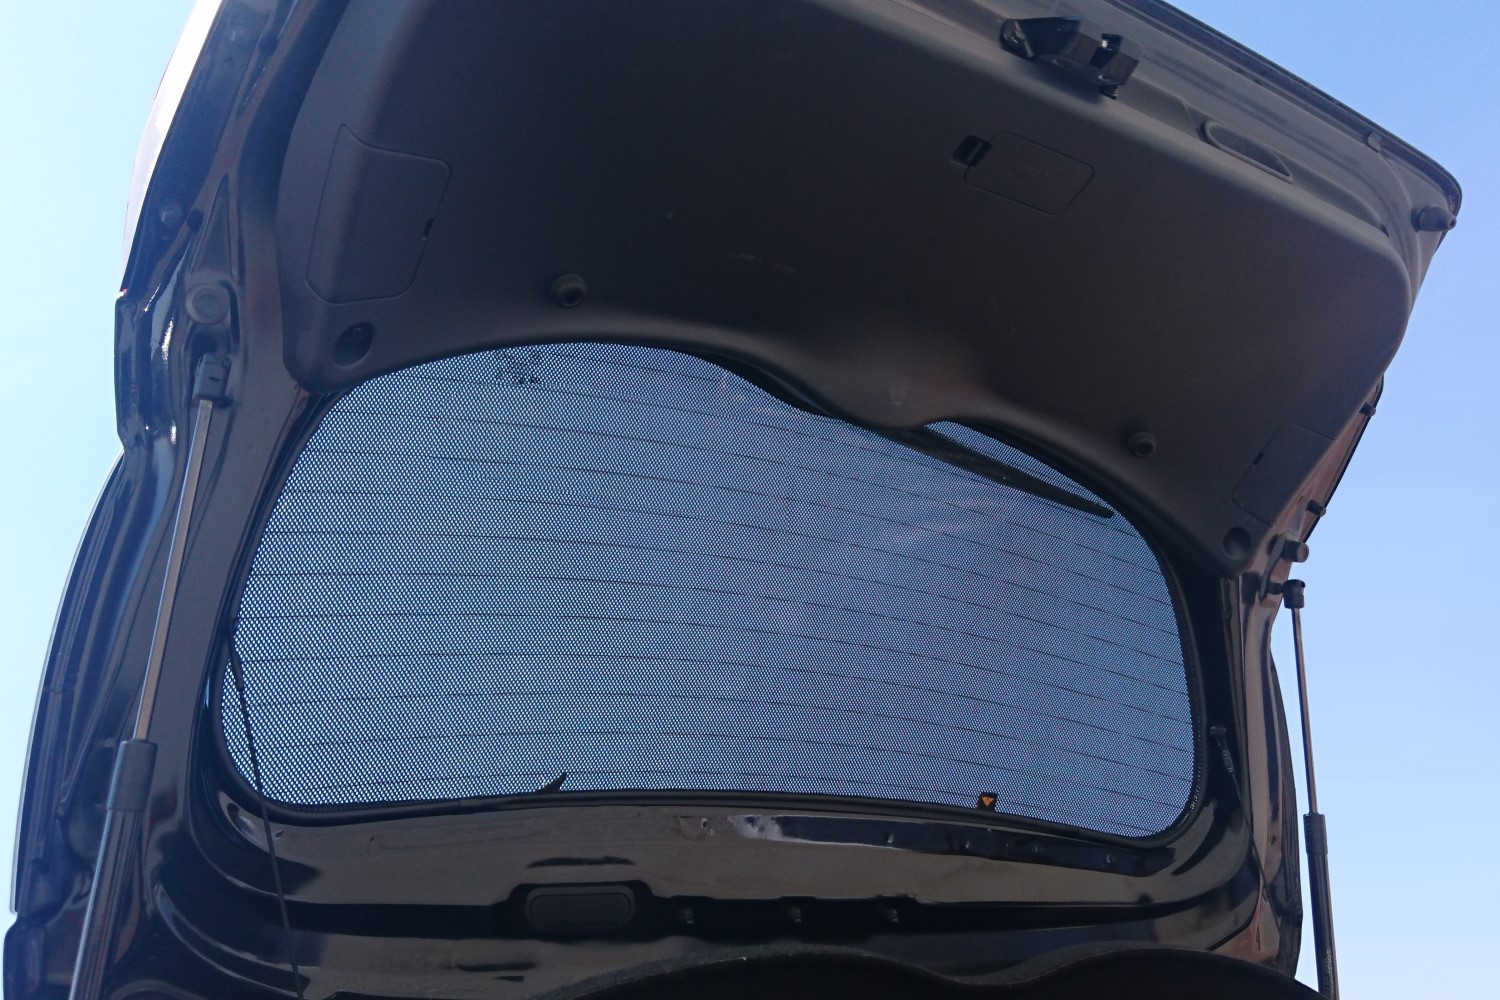 Sun shades Alfa Romeo 156 2000-2007 4-door saloon Trokot - rear window